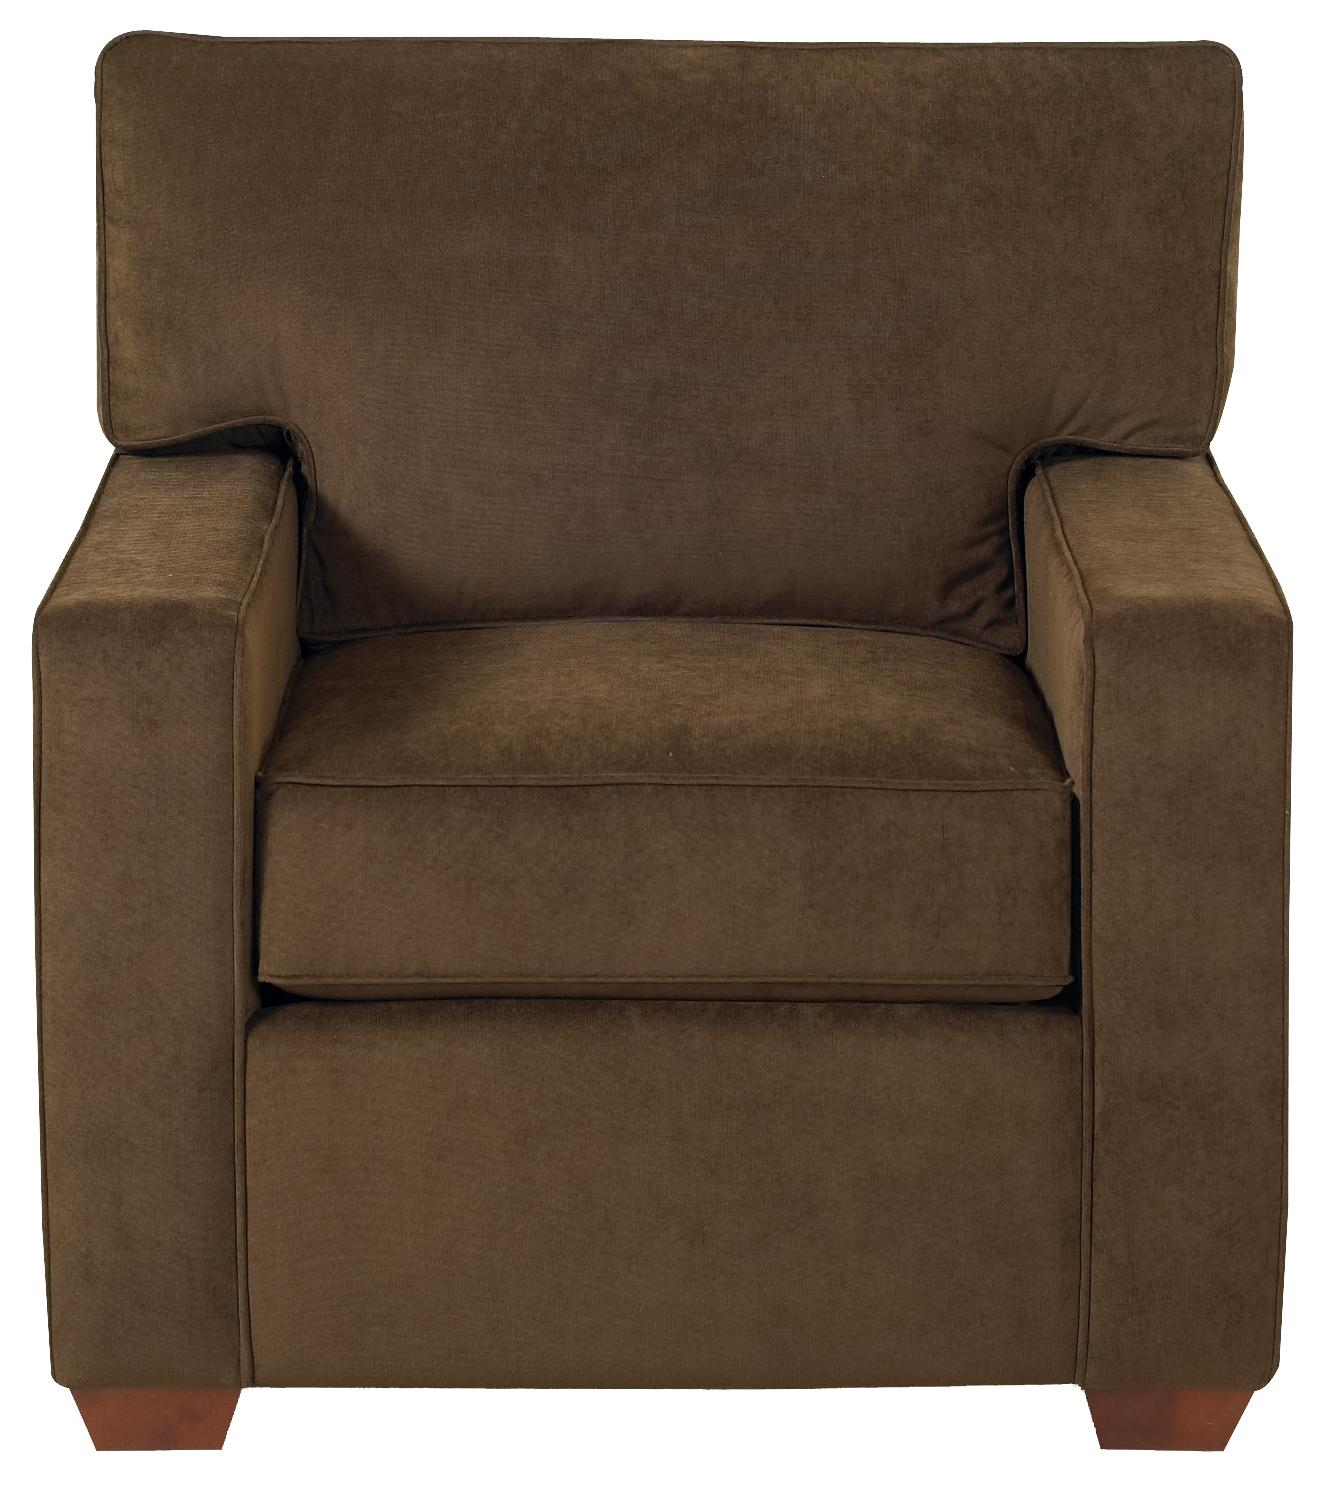 Klaussner selection k50000 c modern living room chair - Modern upholstered living room chairs ...